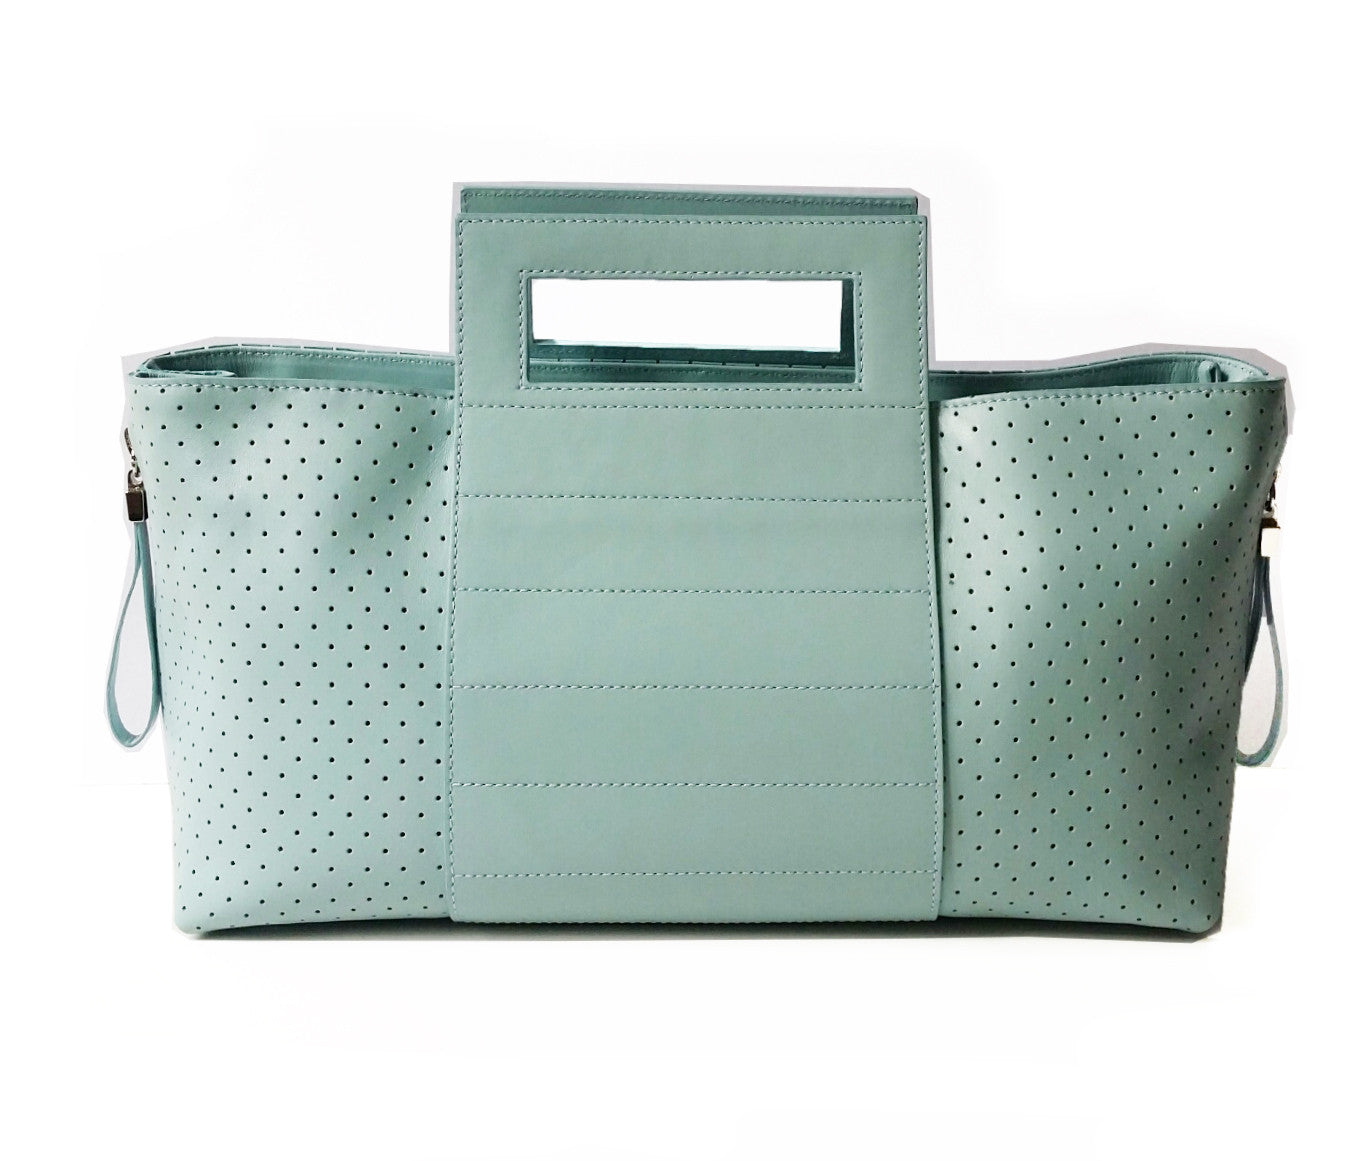 Perforated Zip it - Maria Cardelli Fashion Accessories